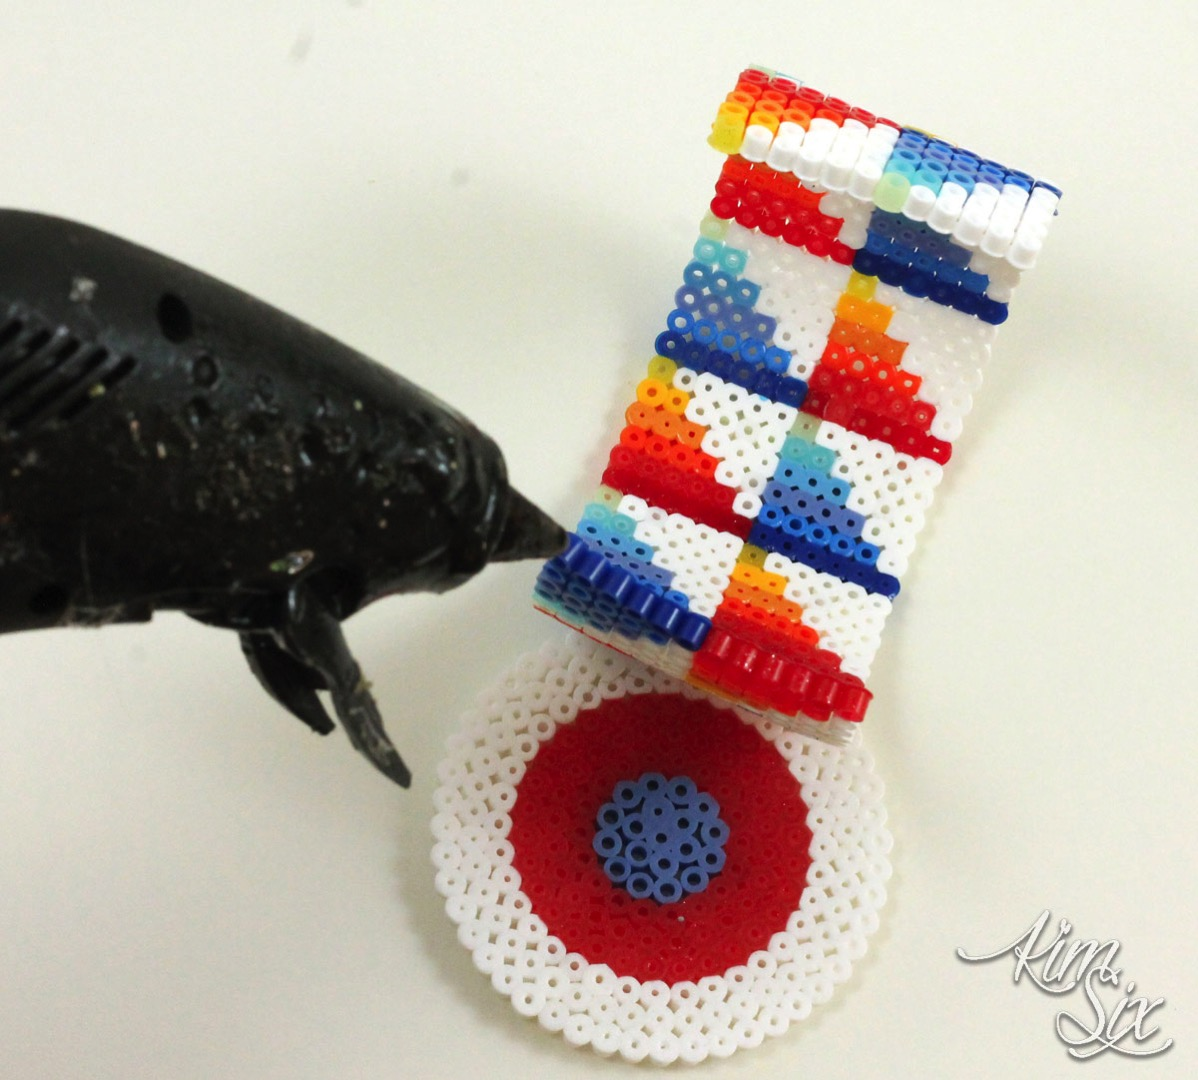 Glue gun on pearler beads to make 3D